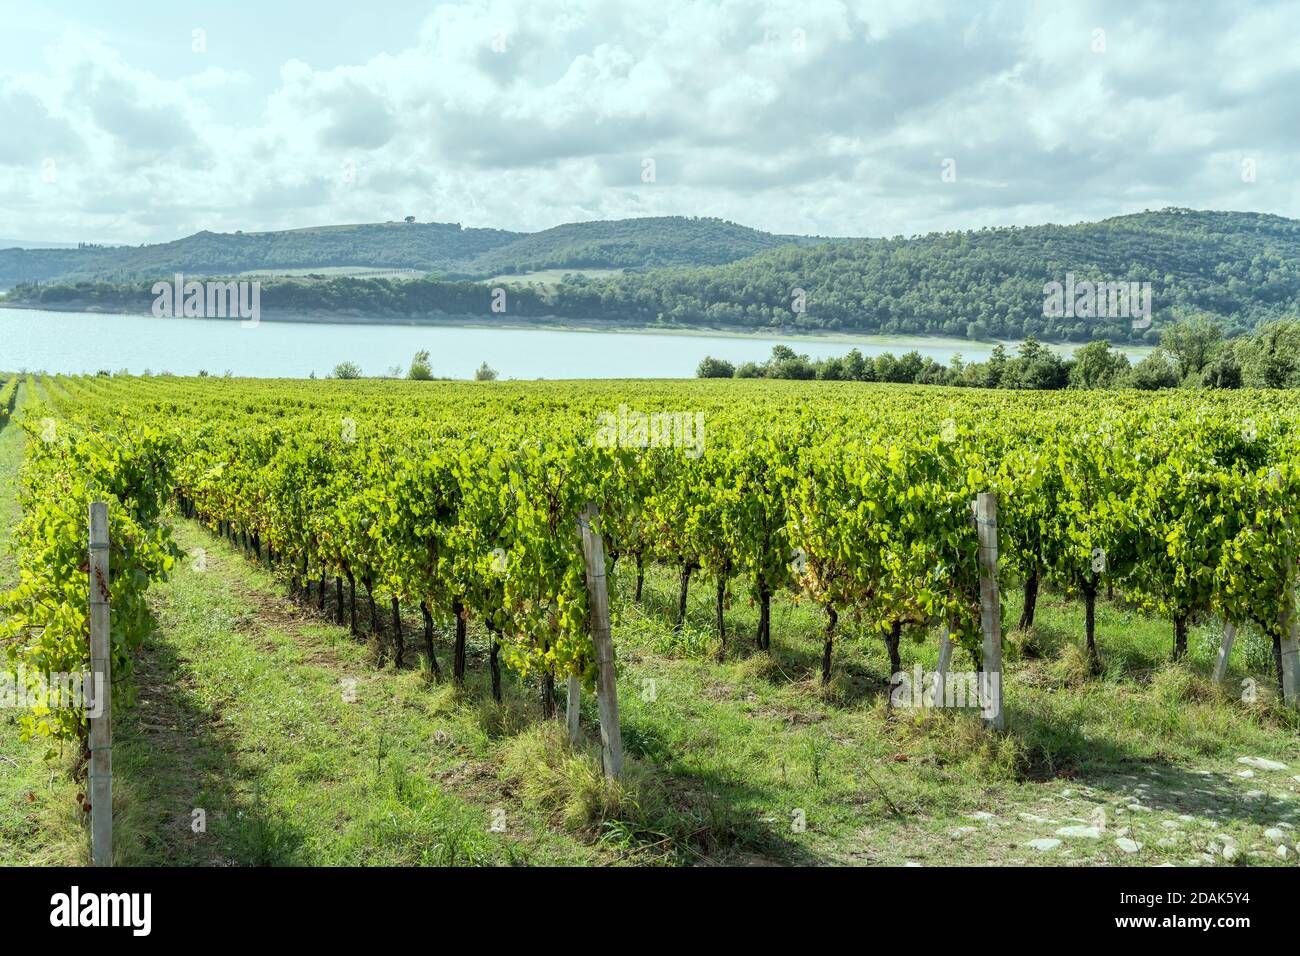 rows of vines in a green rustic landscape near shore, shot in bright light at Corbara lake, Umbria, Italy Stock Photo